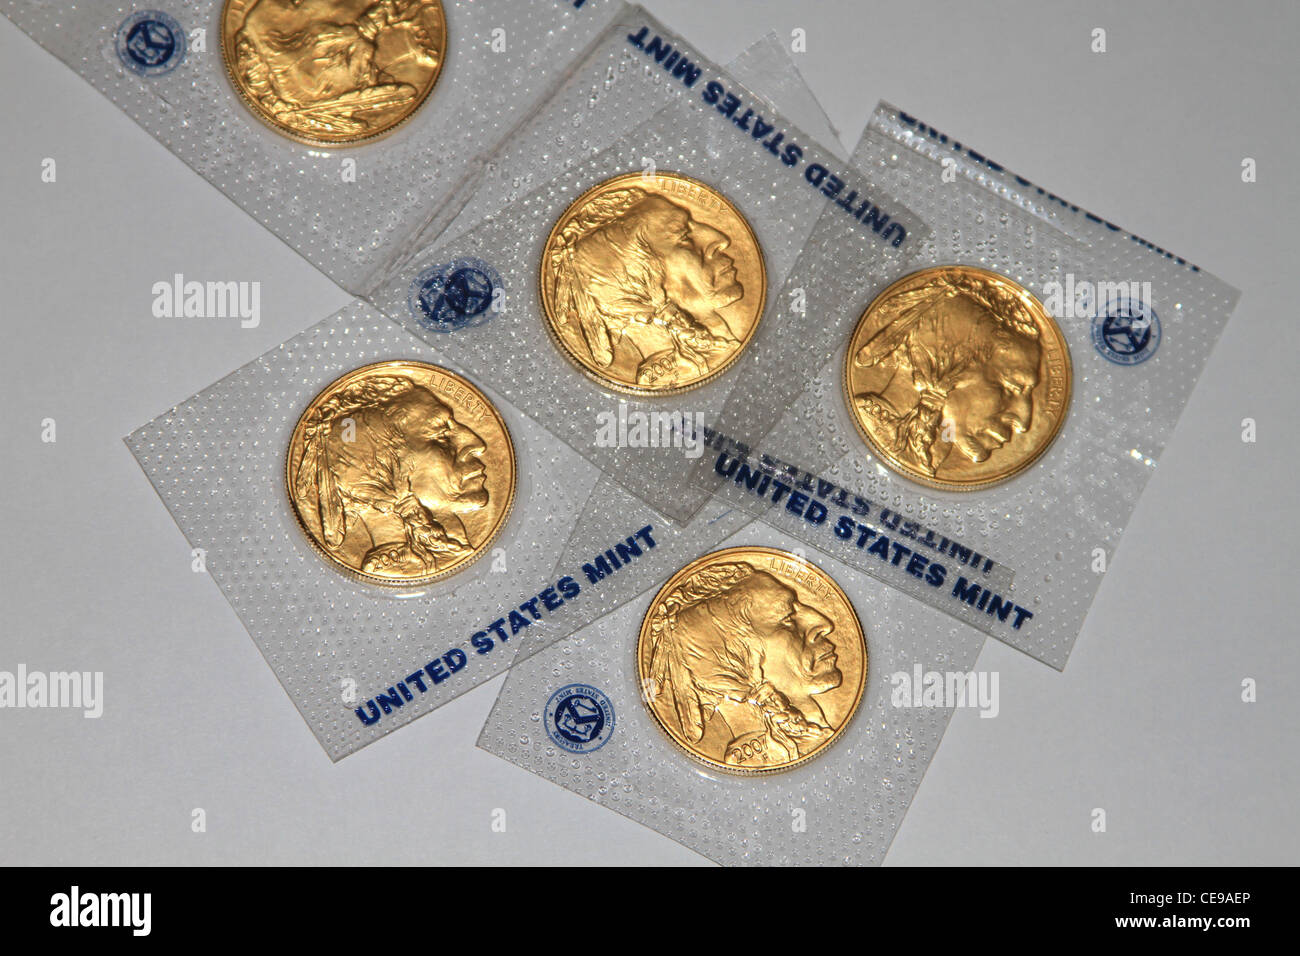 Gold Coin 24 Karat Buffalo Eagle from the United States Mint. Price of gold going up dramatically. - Stock Image